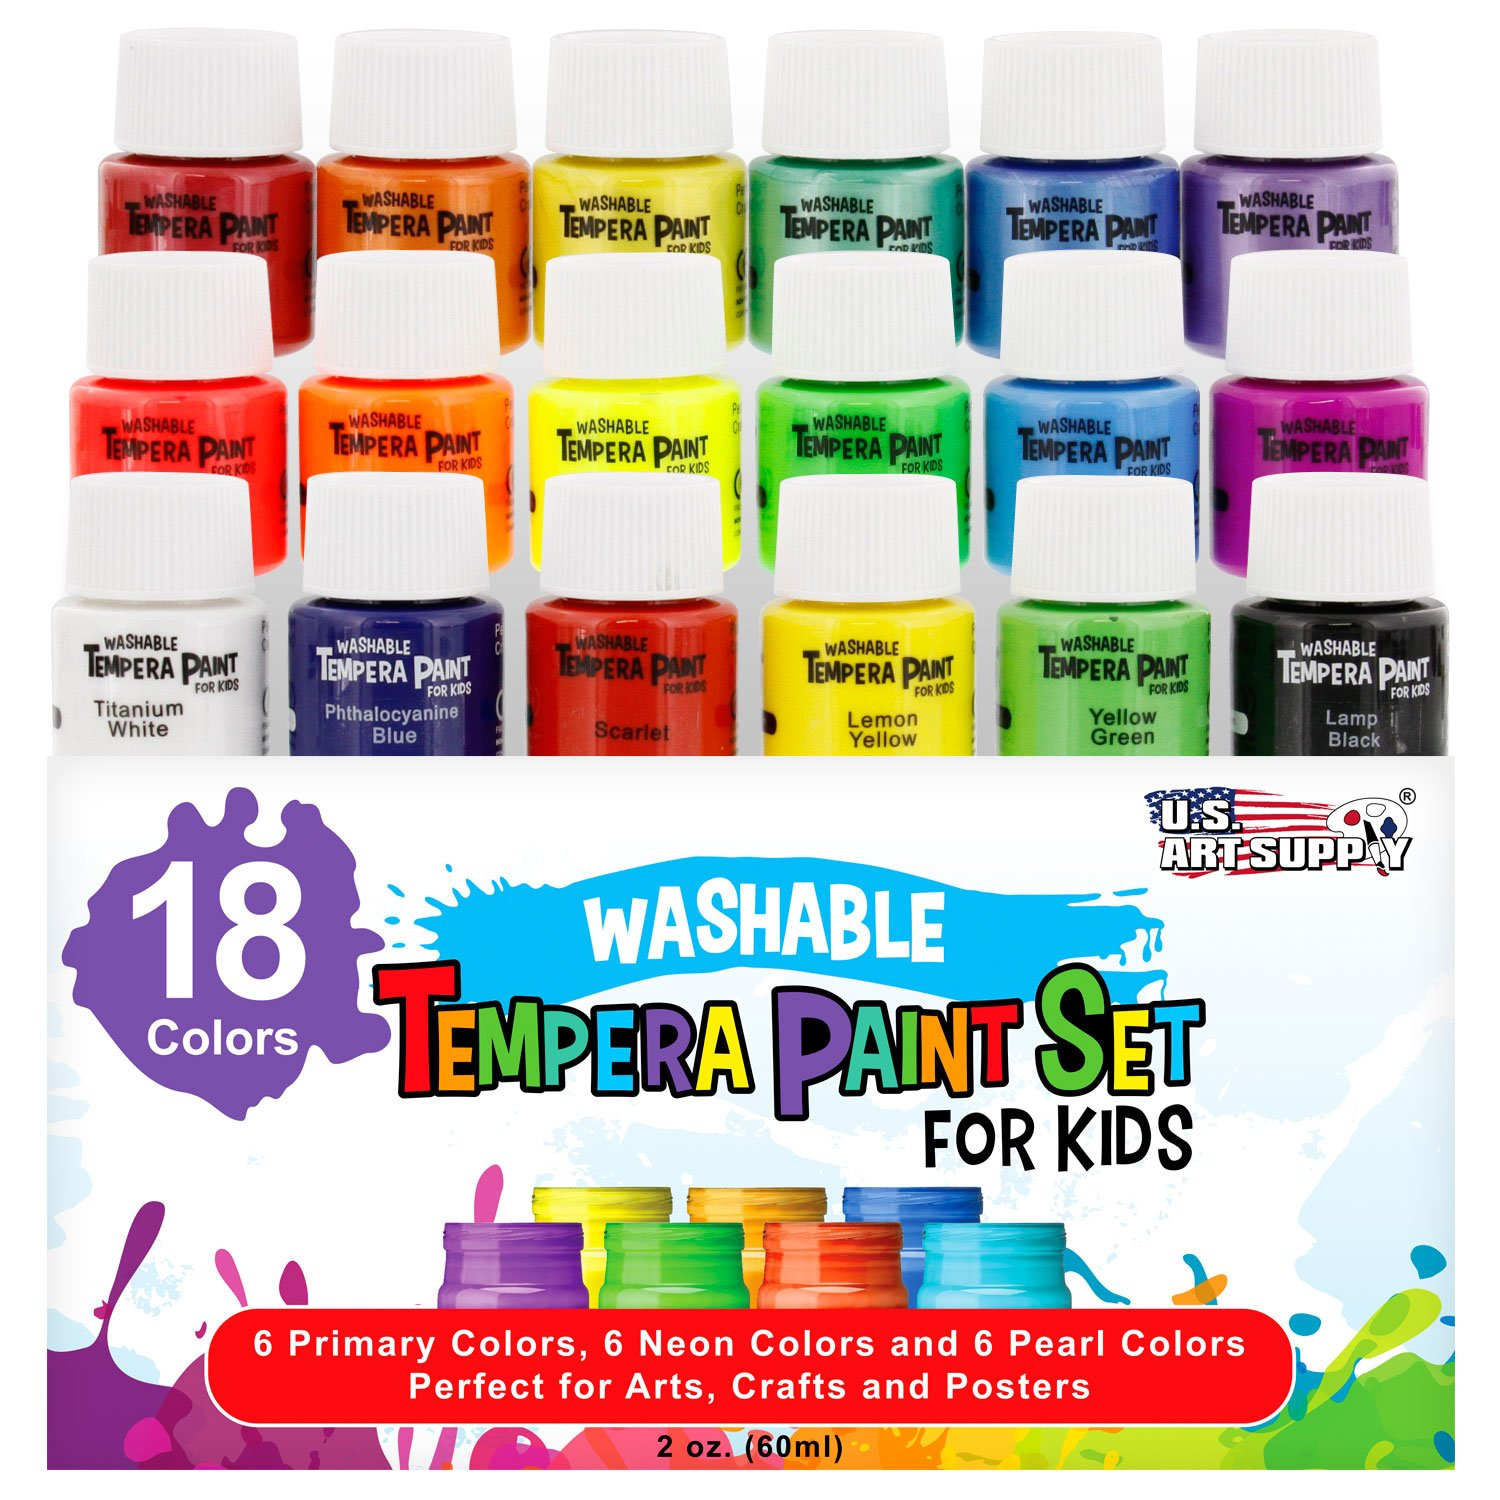 U.S. Art Supply Children's Washable Tempera Paint, 18 ct